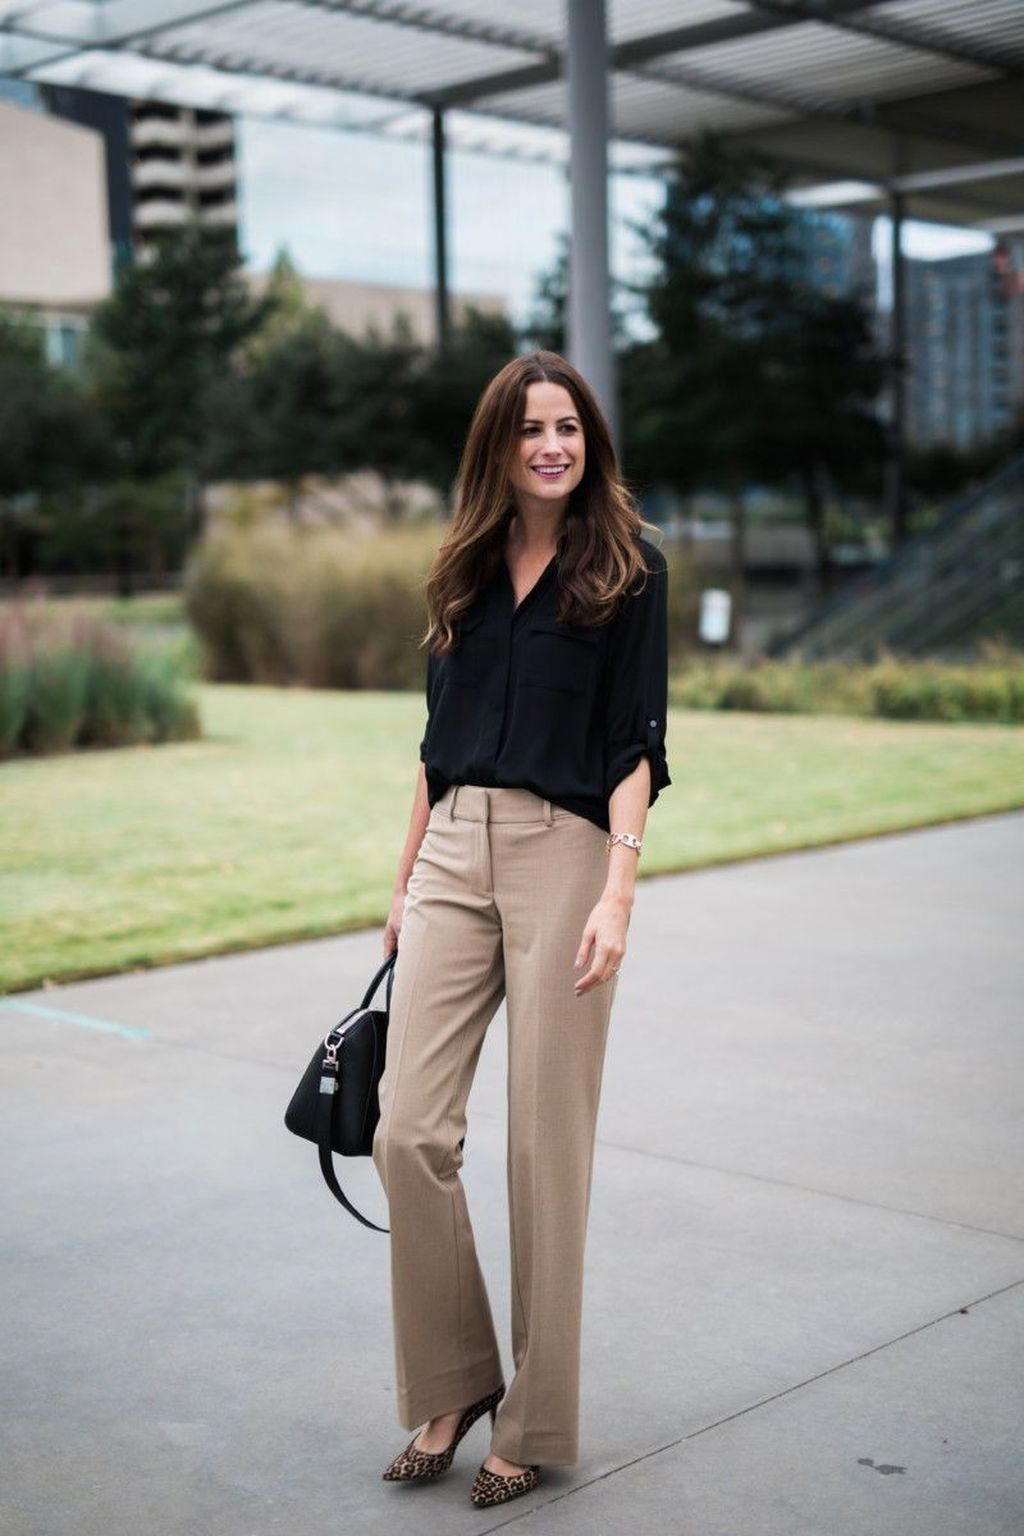 Women S Fashion For 40 Year Olds Topwomensfashionwebsites Work Outfits Women Summer Work Outfits Khaki Pants Outfit [ 1536 x 1024 Pixel ]